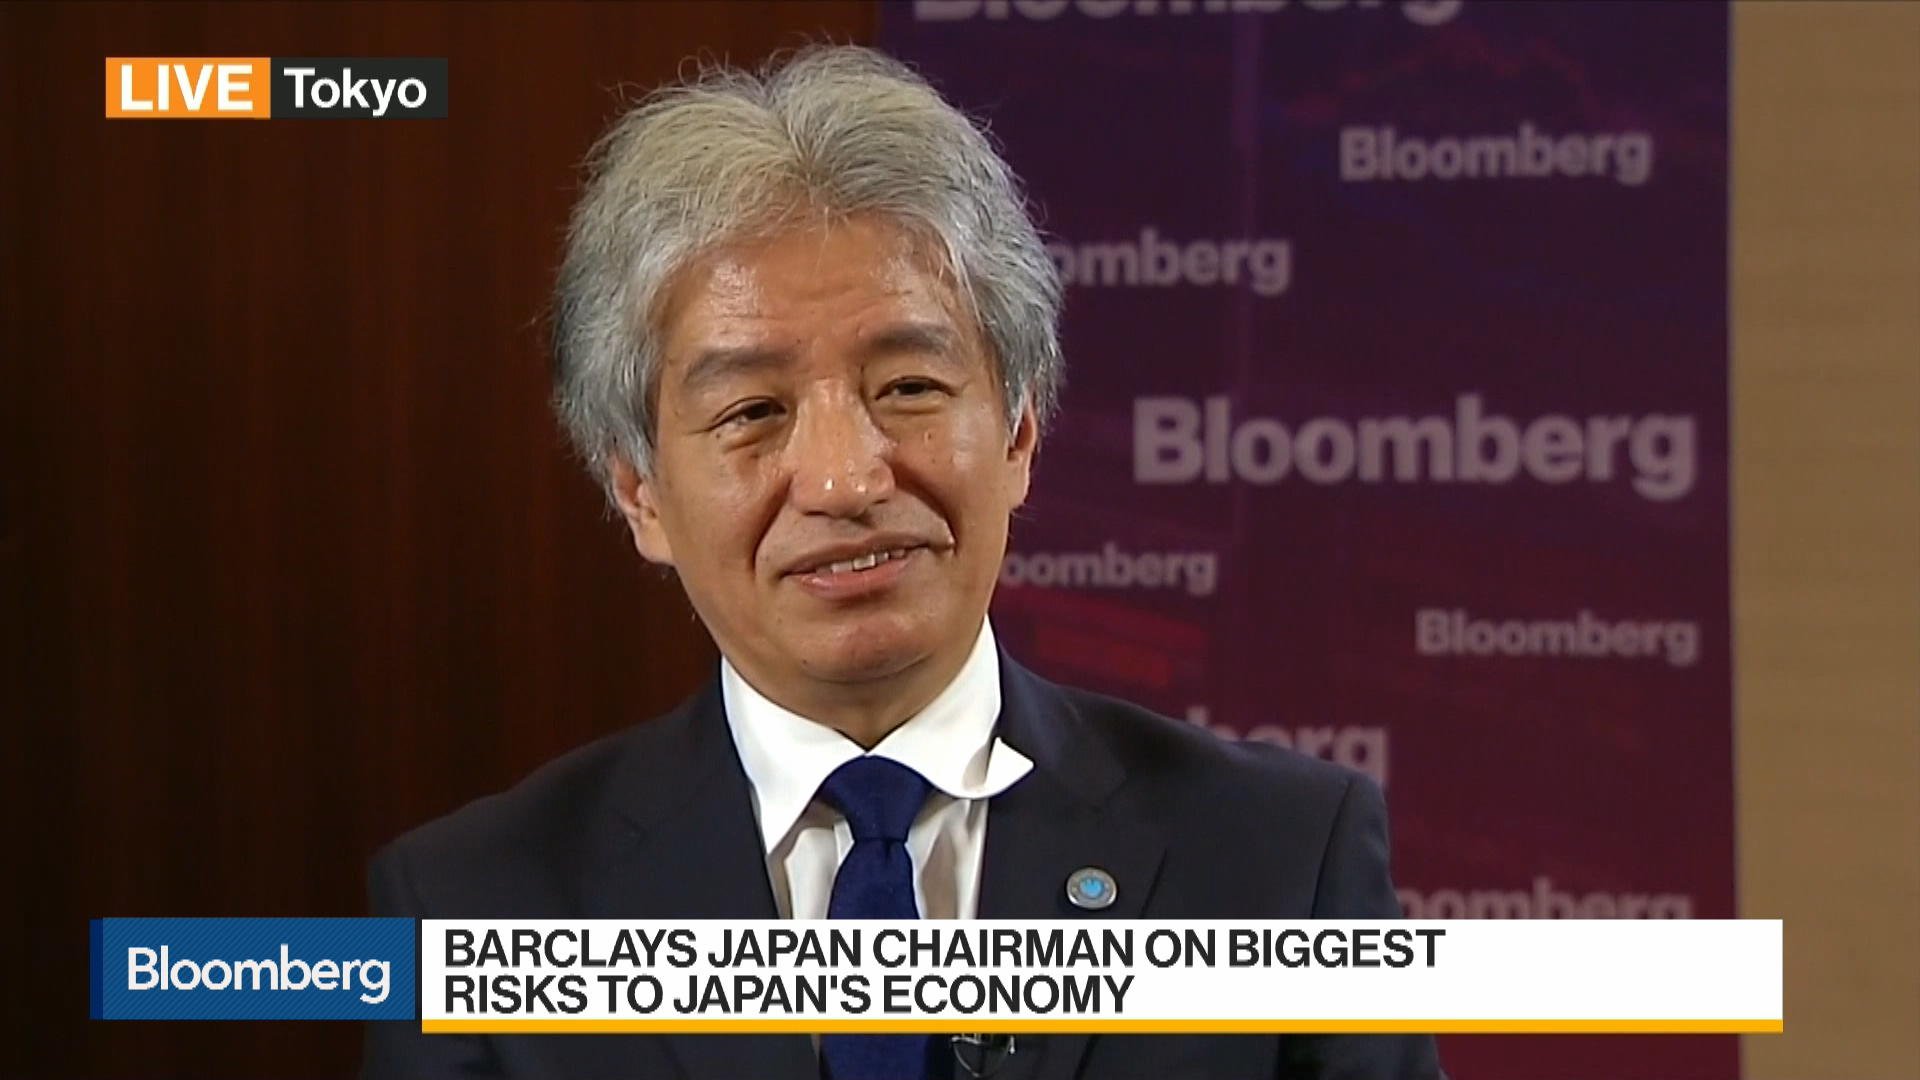 Barclays Securities' Kodama on Market Volatility, Brexit, Future of Banking